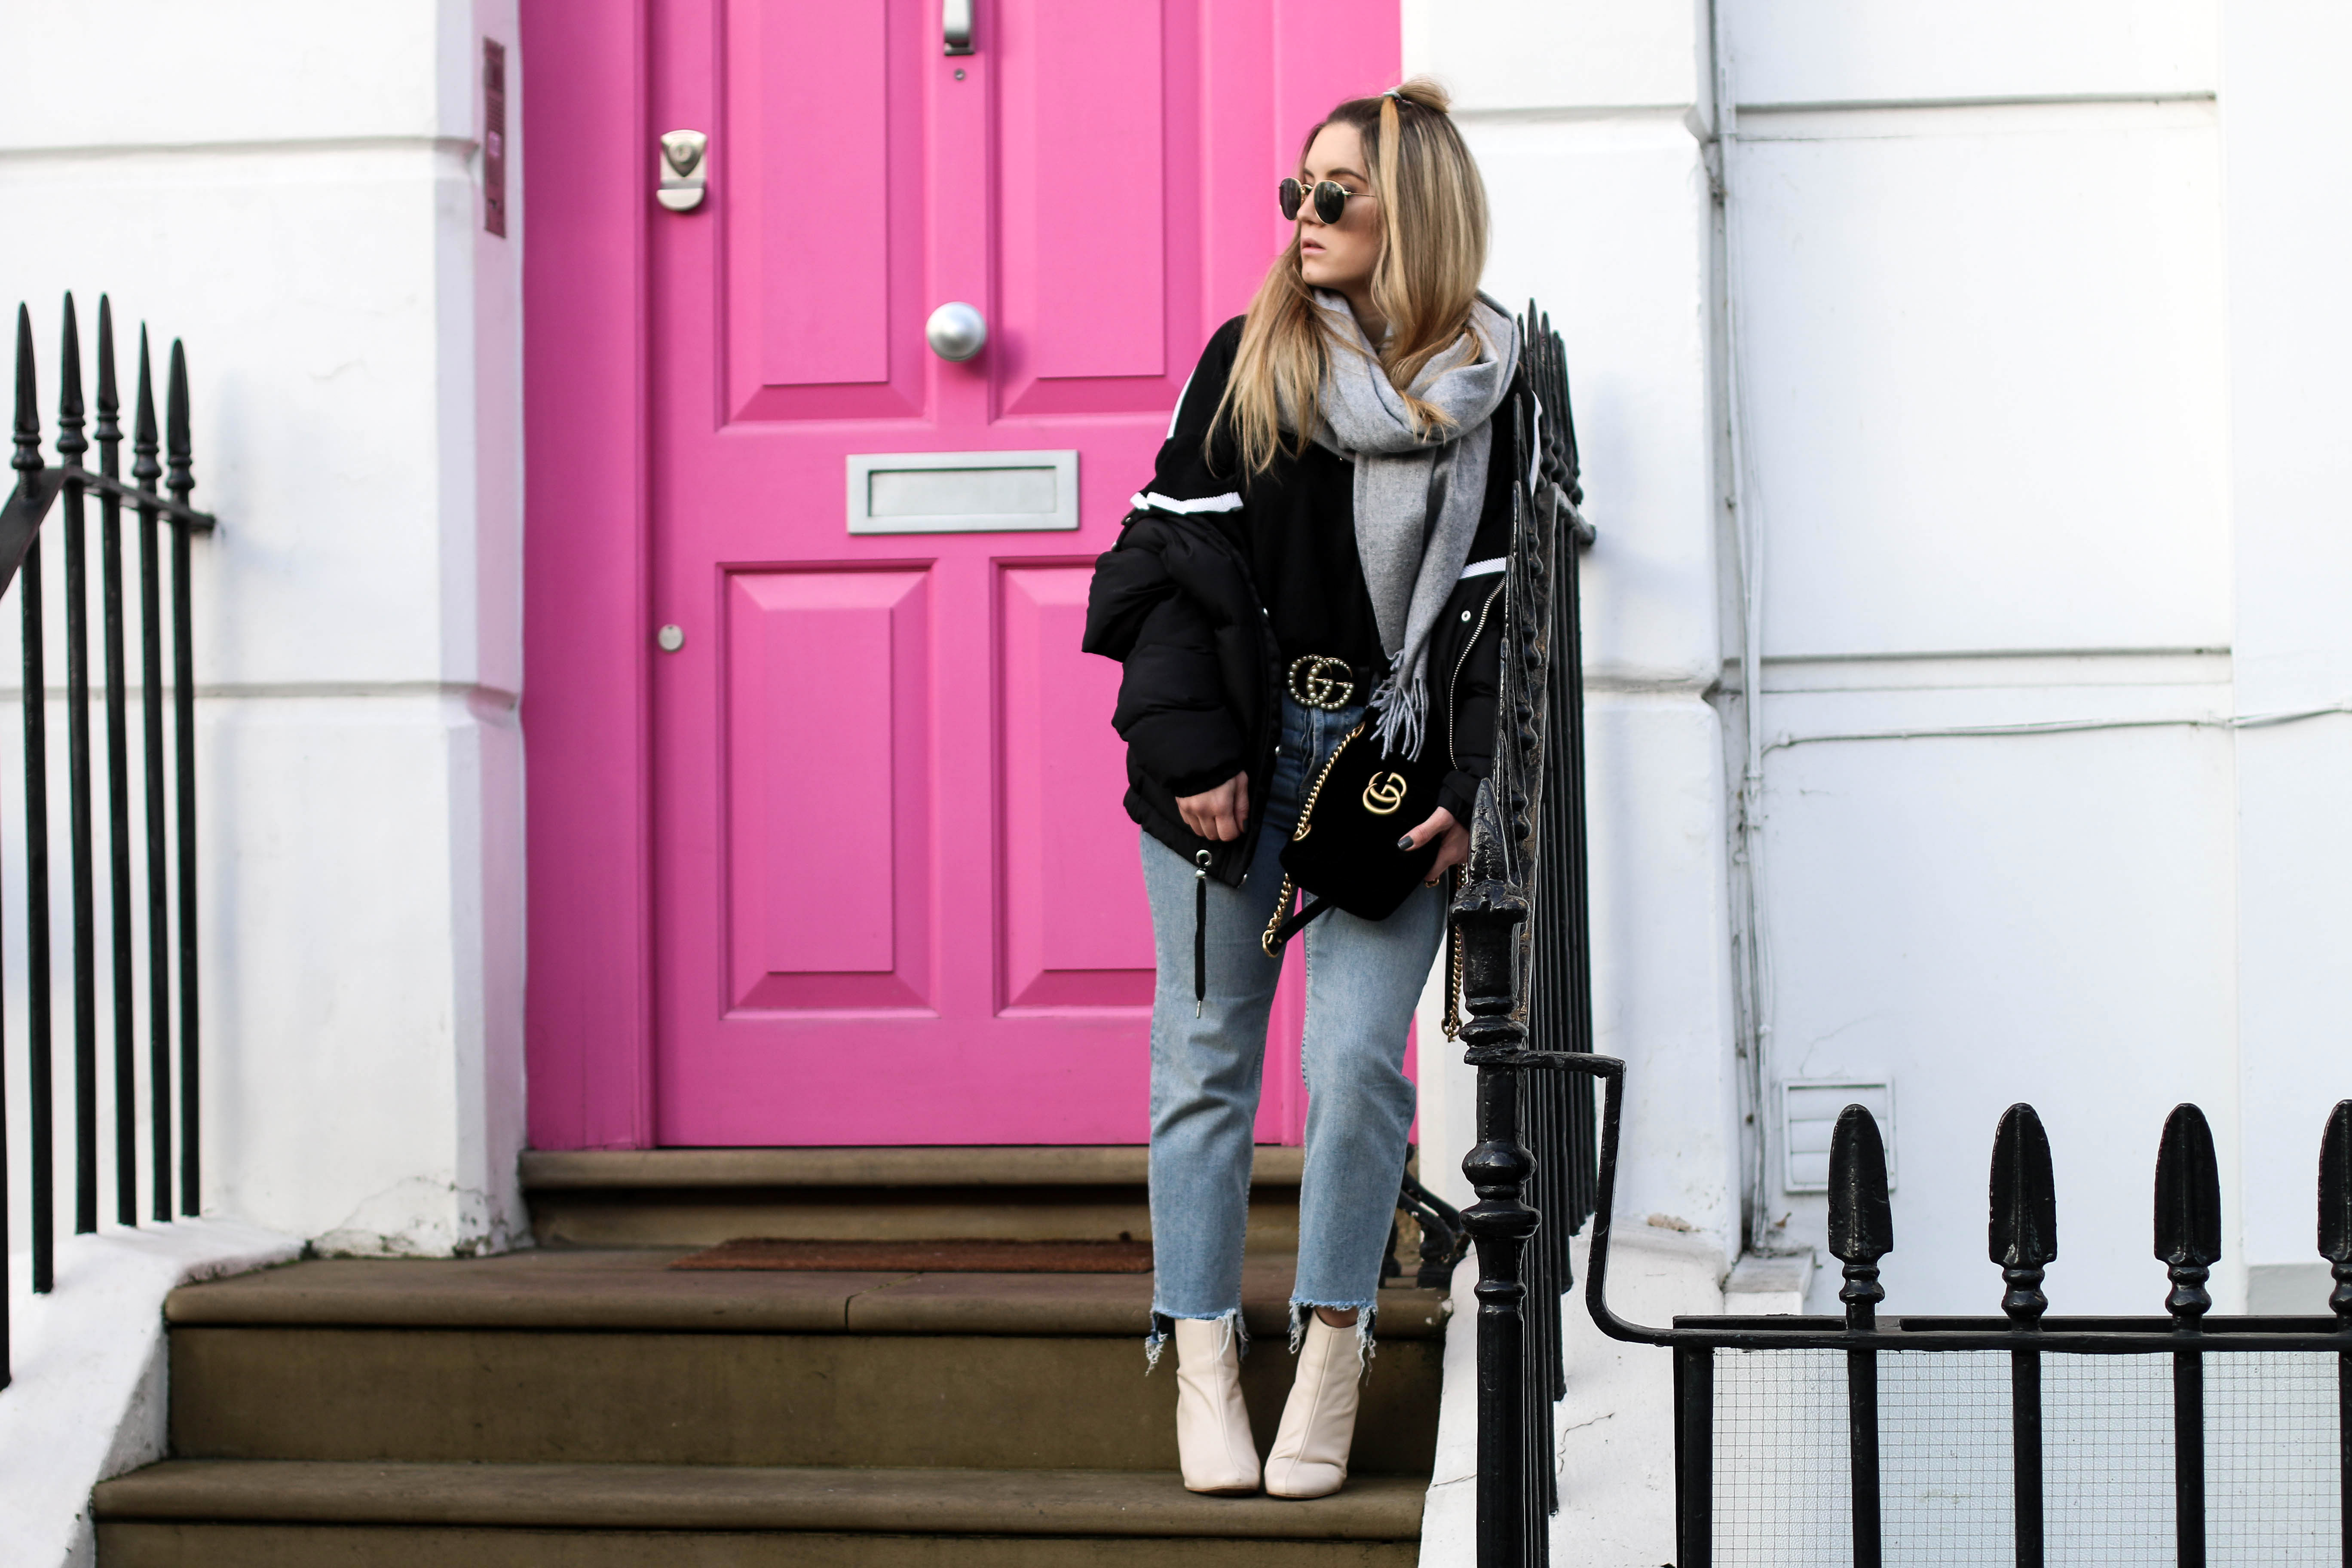 London Travel Diary Pink Door Notting Hill Fashion Blog Travel Blog